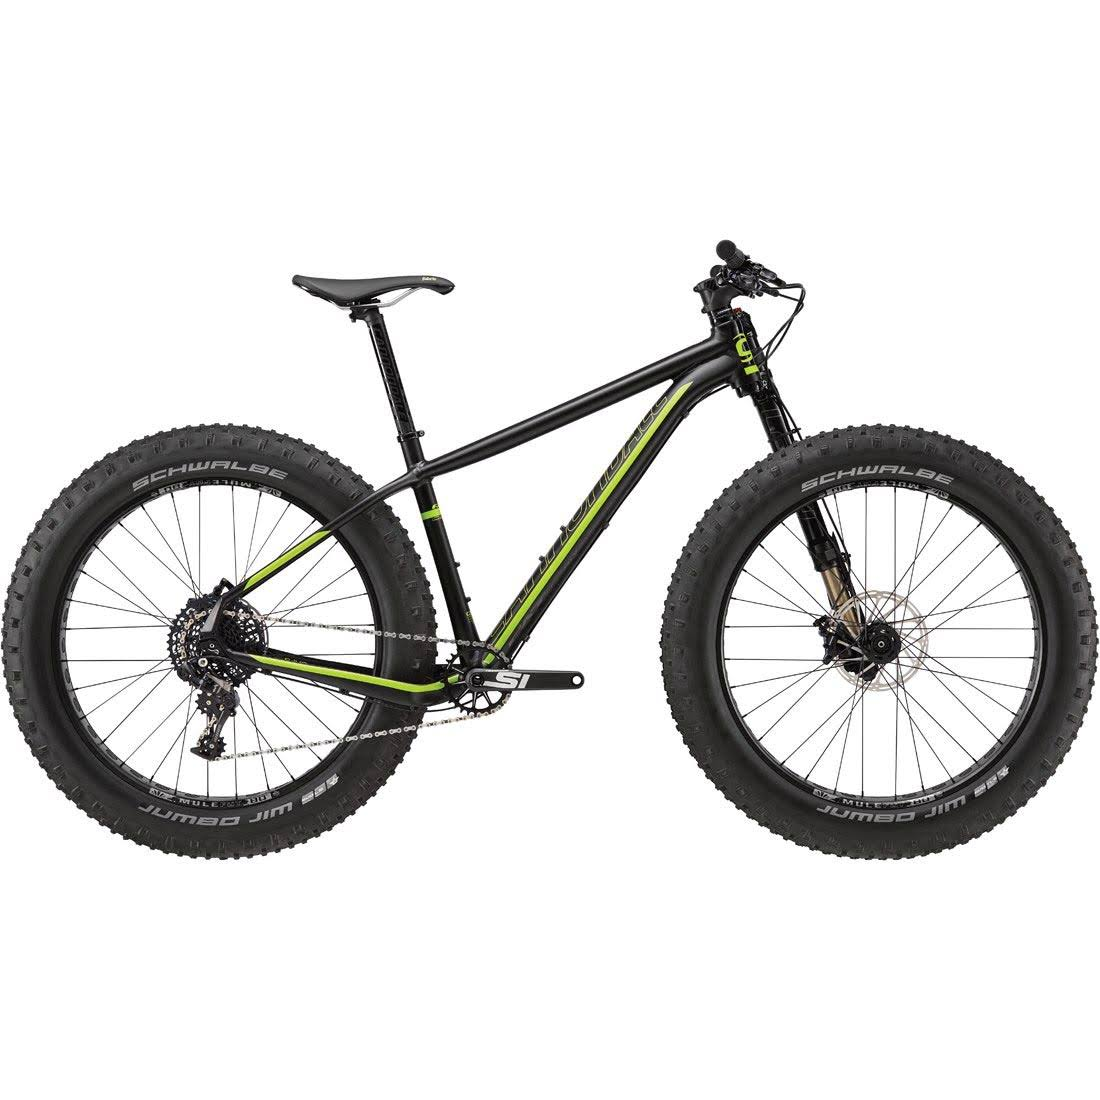 Cannondale Fat CAAD 1 Mountain Bike - Black and Green